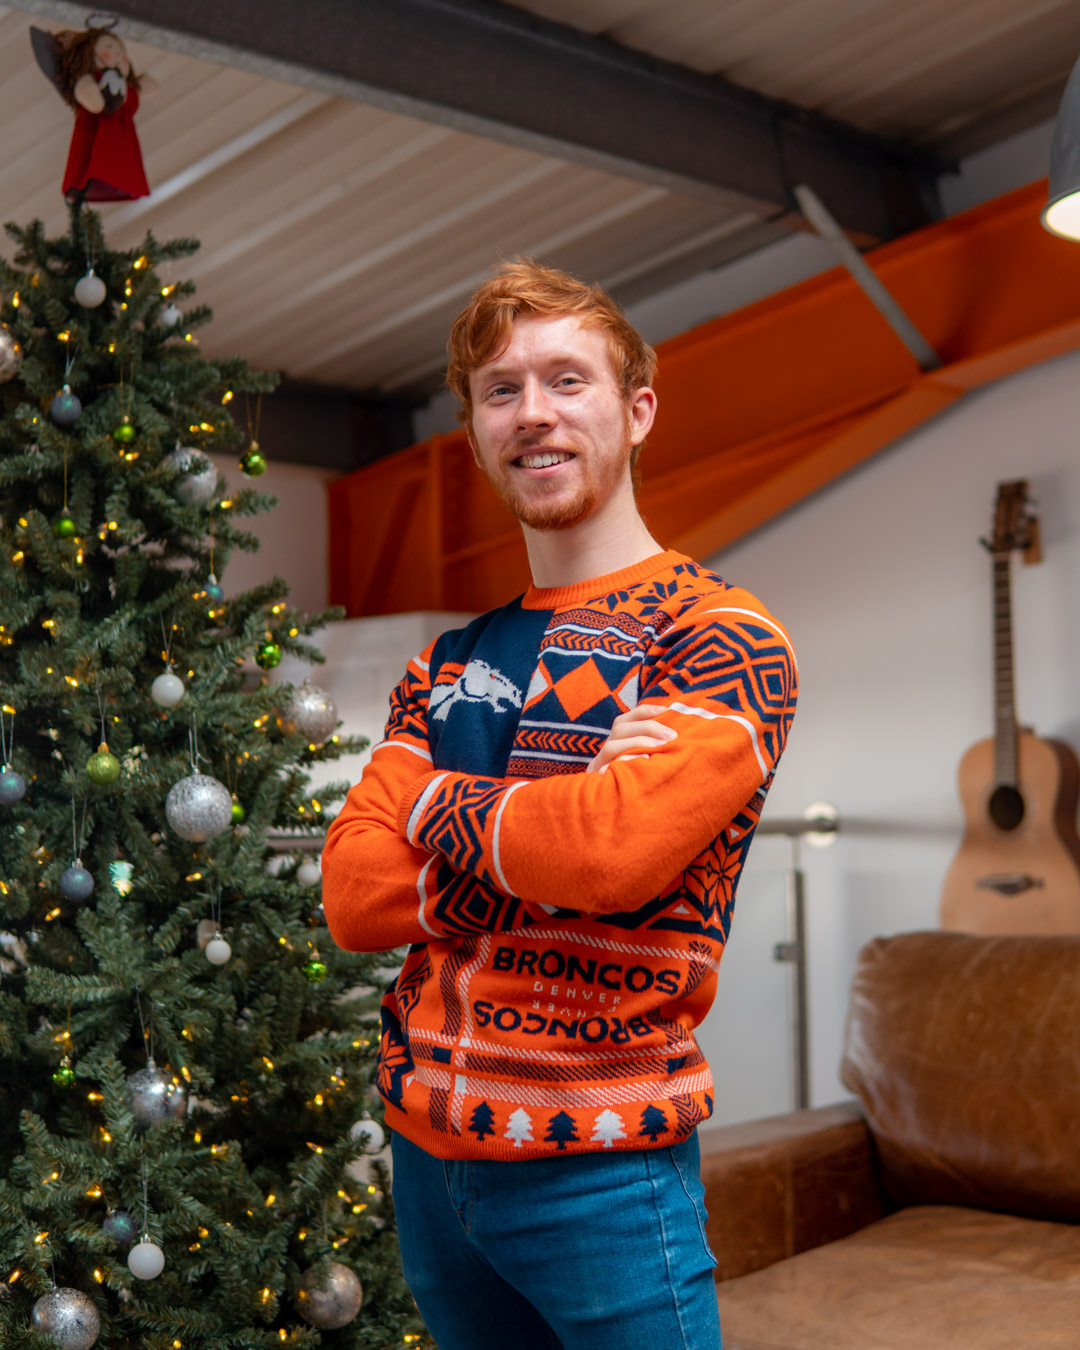 Christmas Jumper Day 2020: Josh wearing Denver Broncos Christmas Jumper